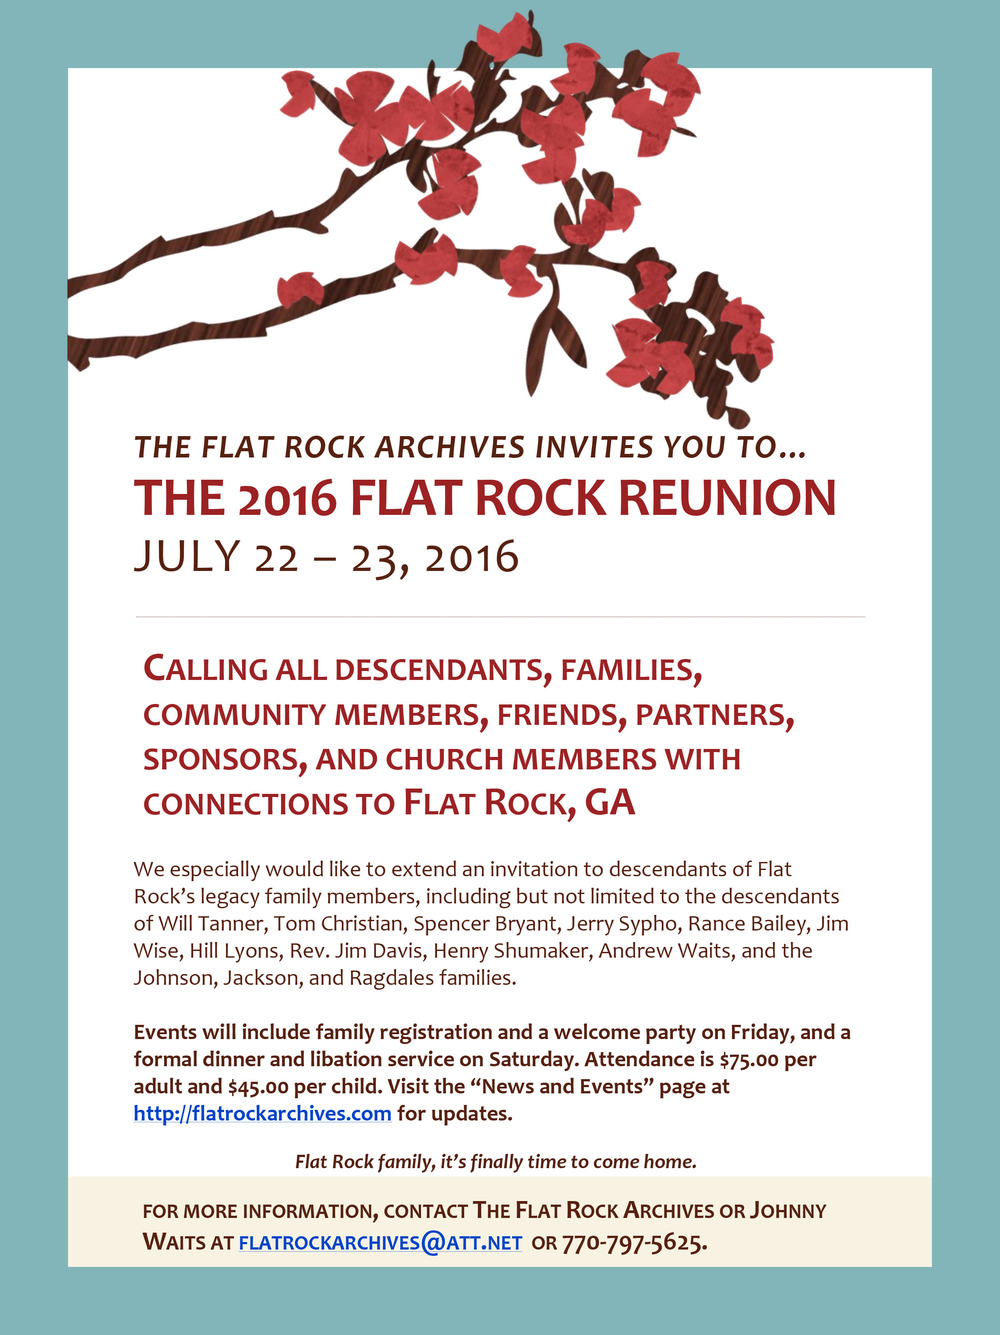 Flat Rock Archives - News and Events — Flat Rock Archives